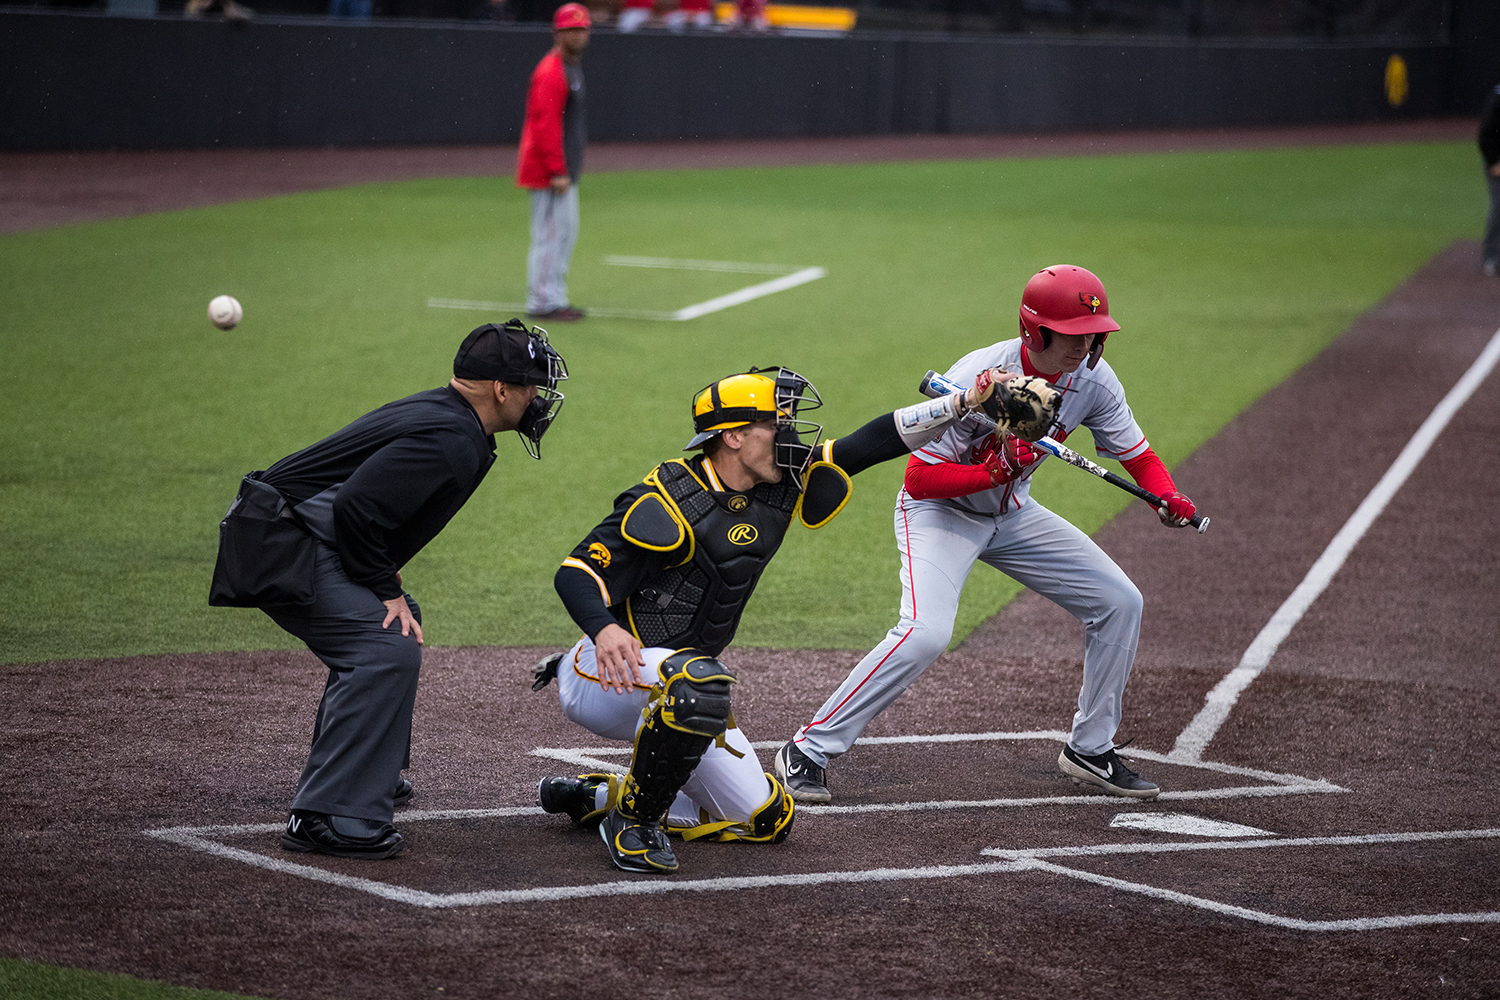 Iowa%27s+Austin+Martin+misses+a+pitch+during+a+baseball+game+against+Illinois+State+on+Wednesday%2C+Apr.+3%2C+2019.+The+Hawkeyes+lost+to+the+Redbirds+11-6.+%28Roman+Slabach%2FThe+Daily+Iowan%29